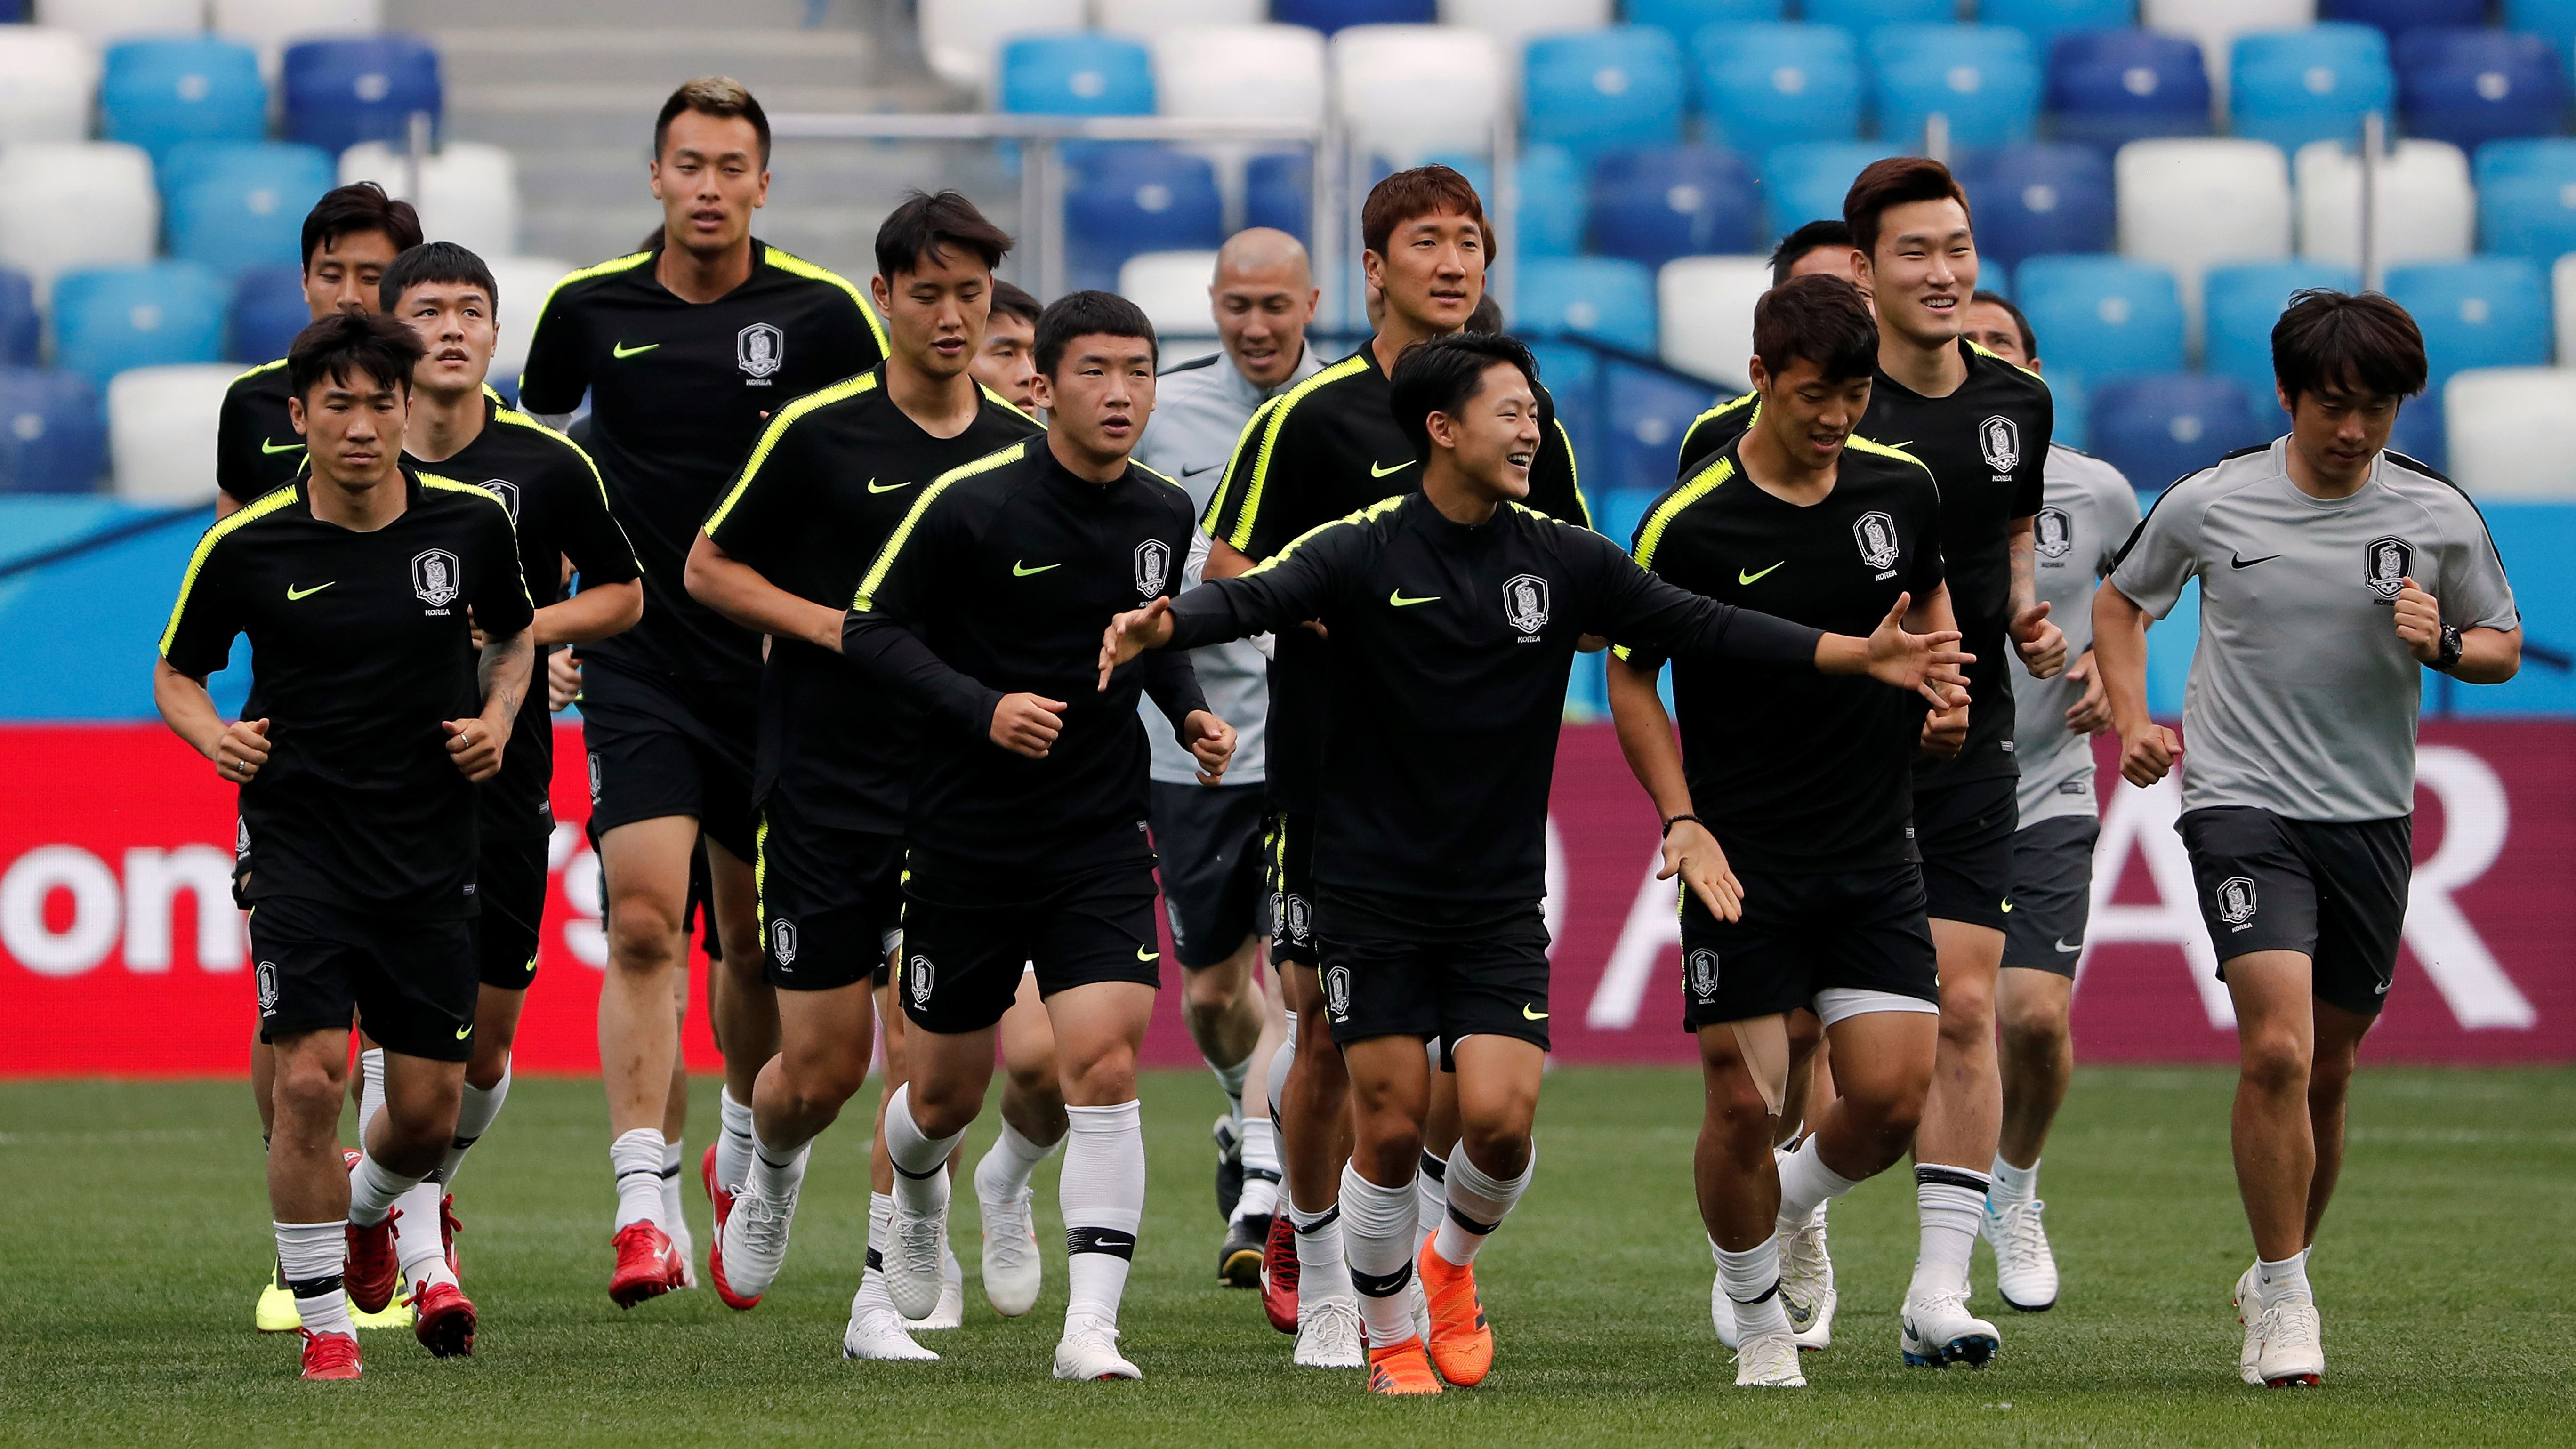 5c03208b4 South Korea swapped shirts in friendlies to confuse World Cup opponents